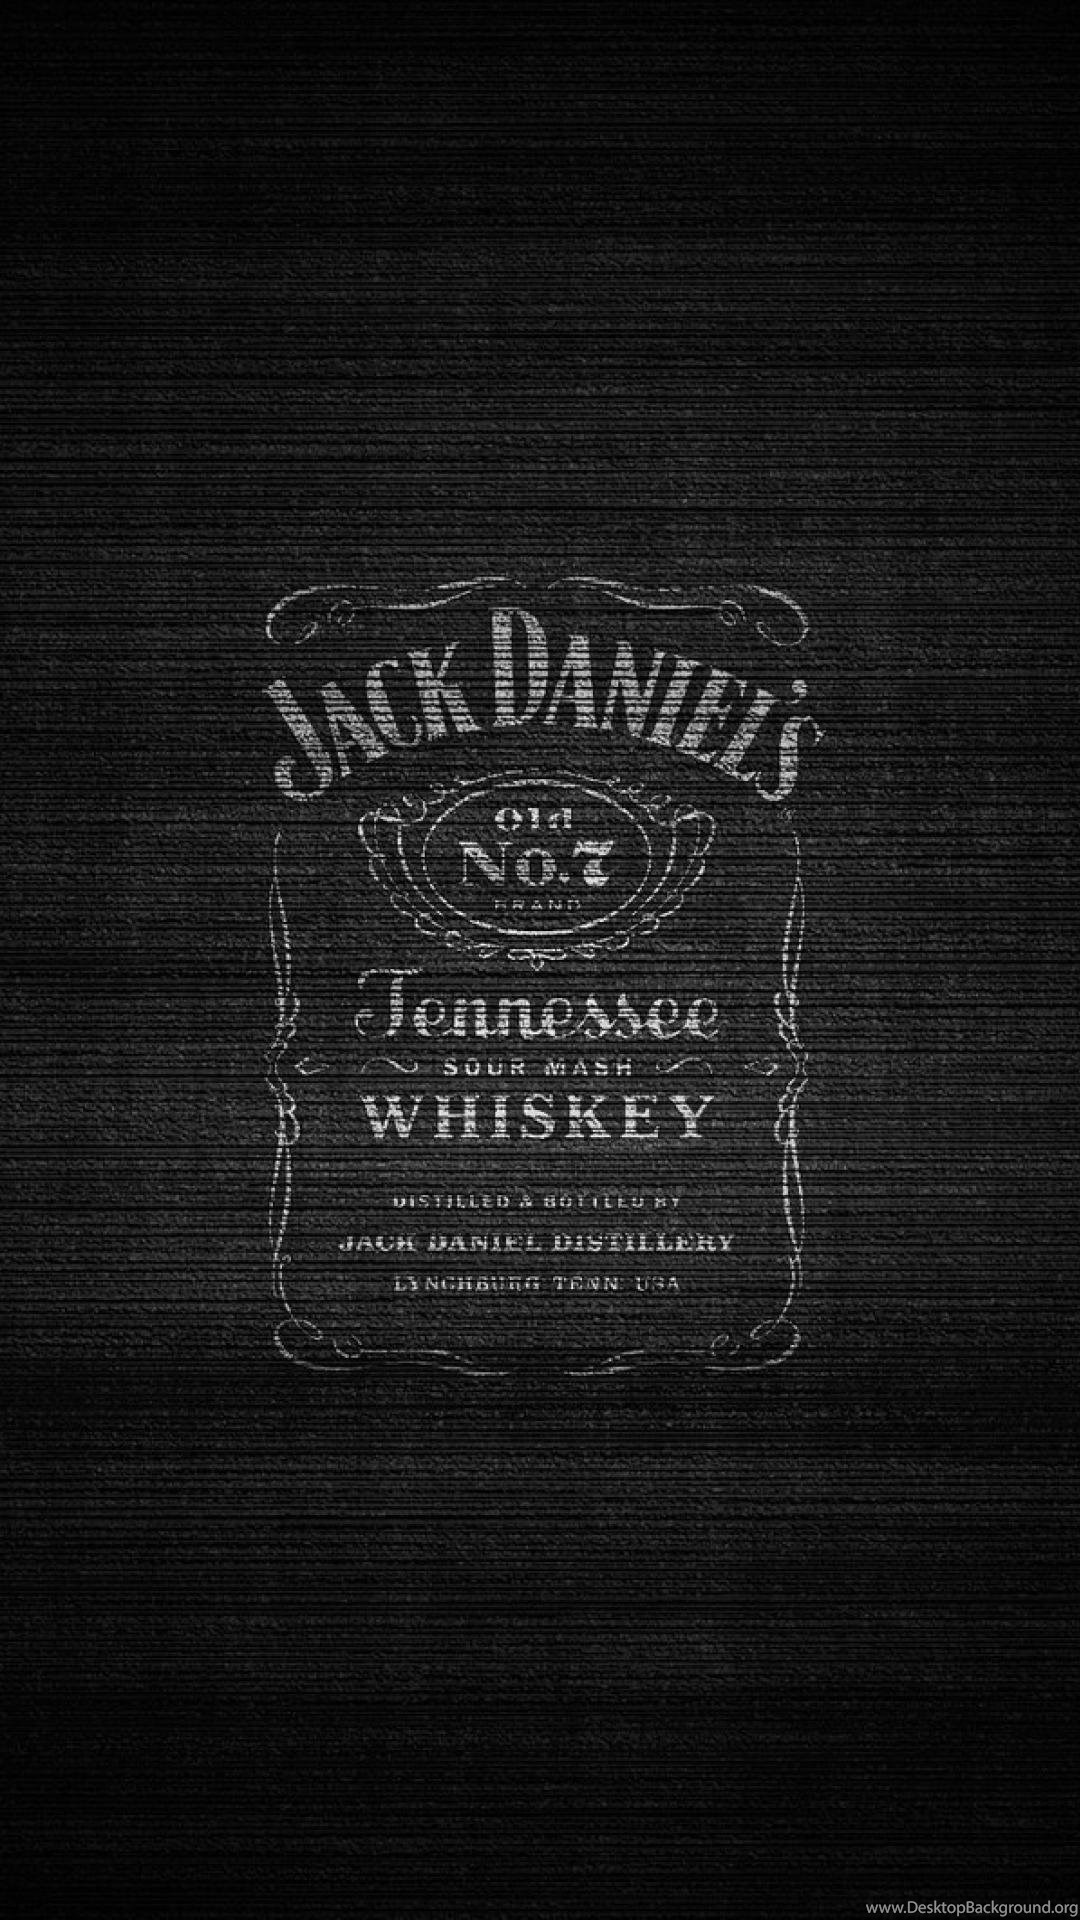 Oppo R7 Wallpaper Jack Daniels Whiskey Mobile Android Wallpapers Desktop Background